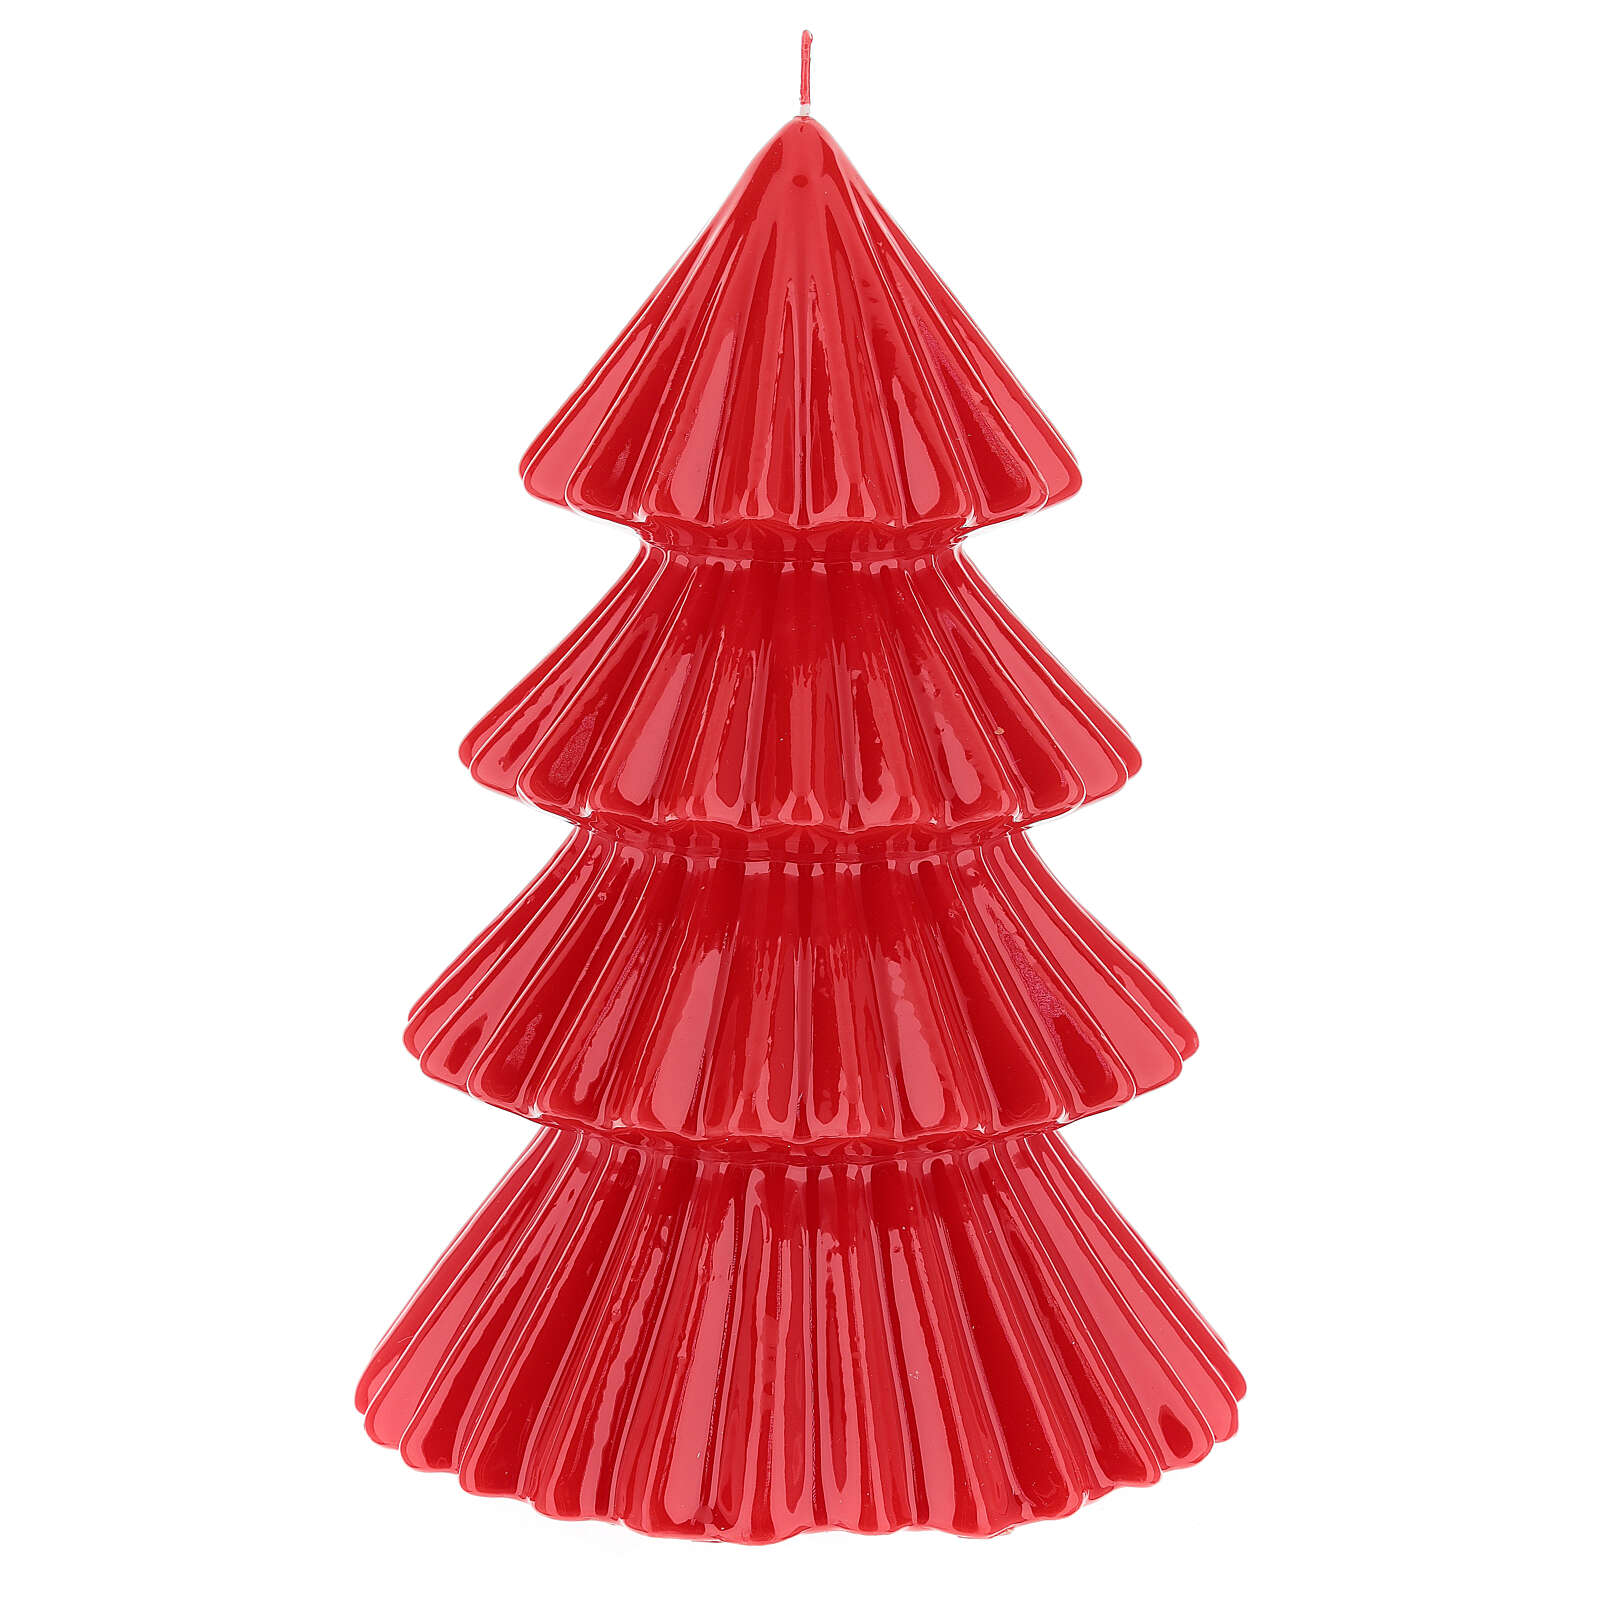 Red Tokyo Christmas candle tree shape 9 in 3